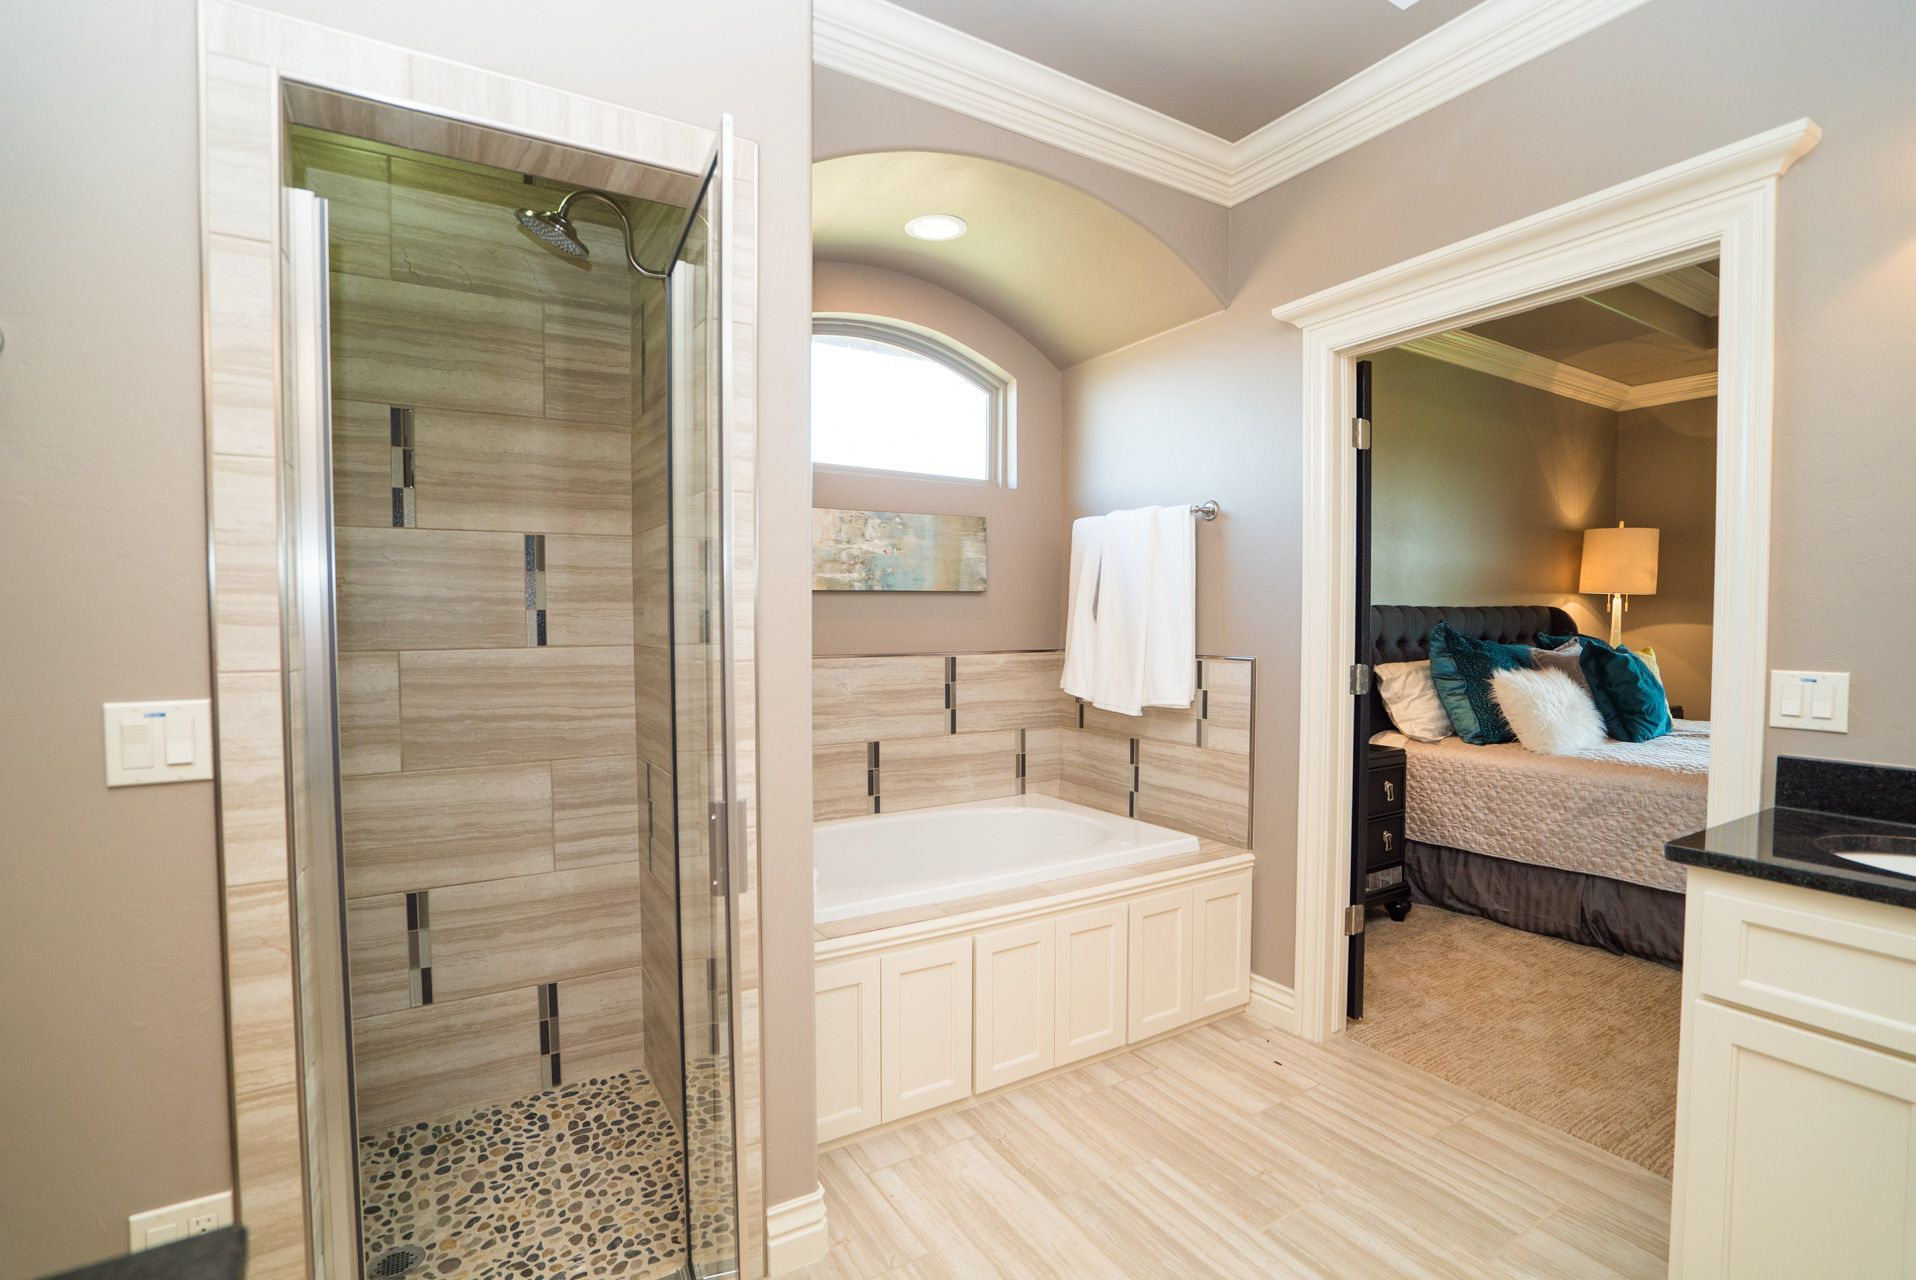 New Home at 3924 NW 167th Terrace, Edmond OK - 3 beds. 2.50 baths. 2443 sq.ft.